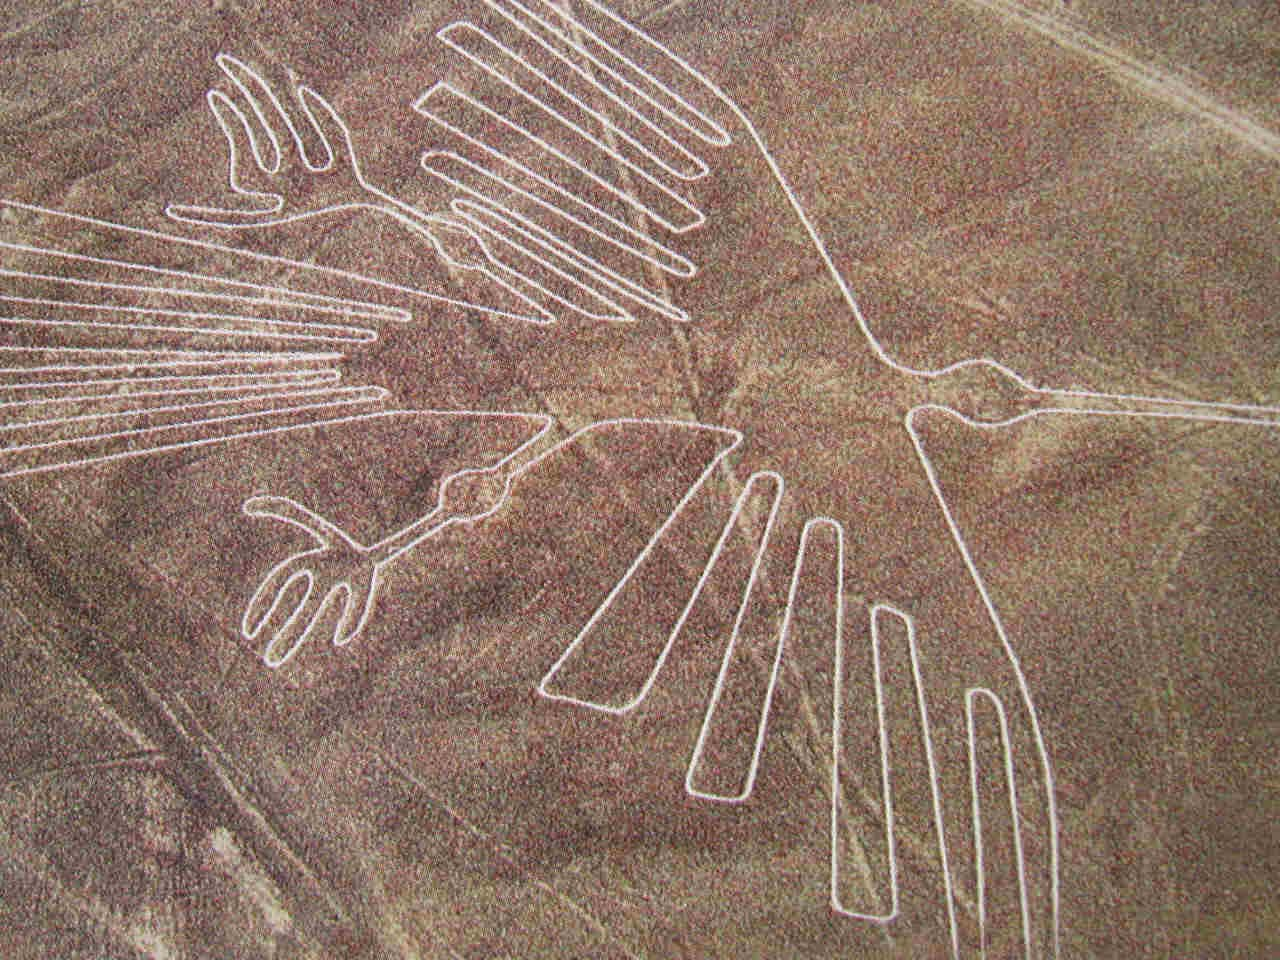 Flight over the Nasca lines